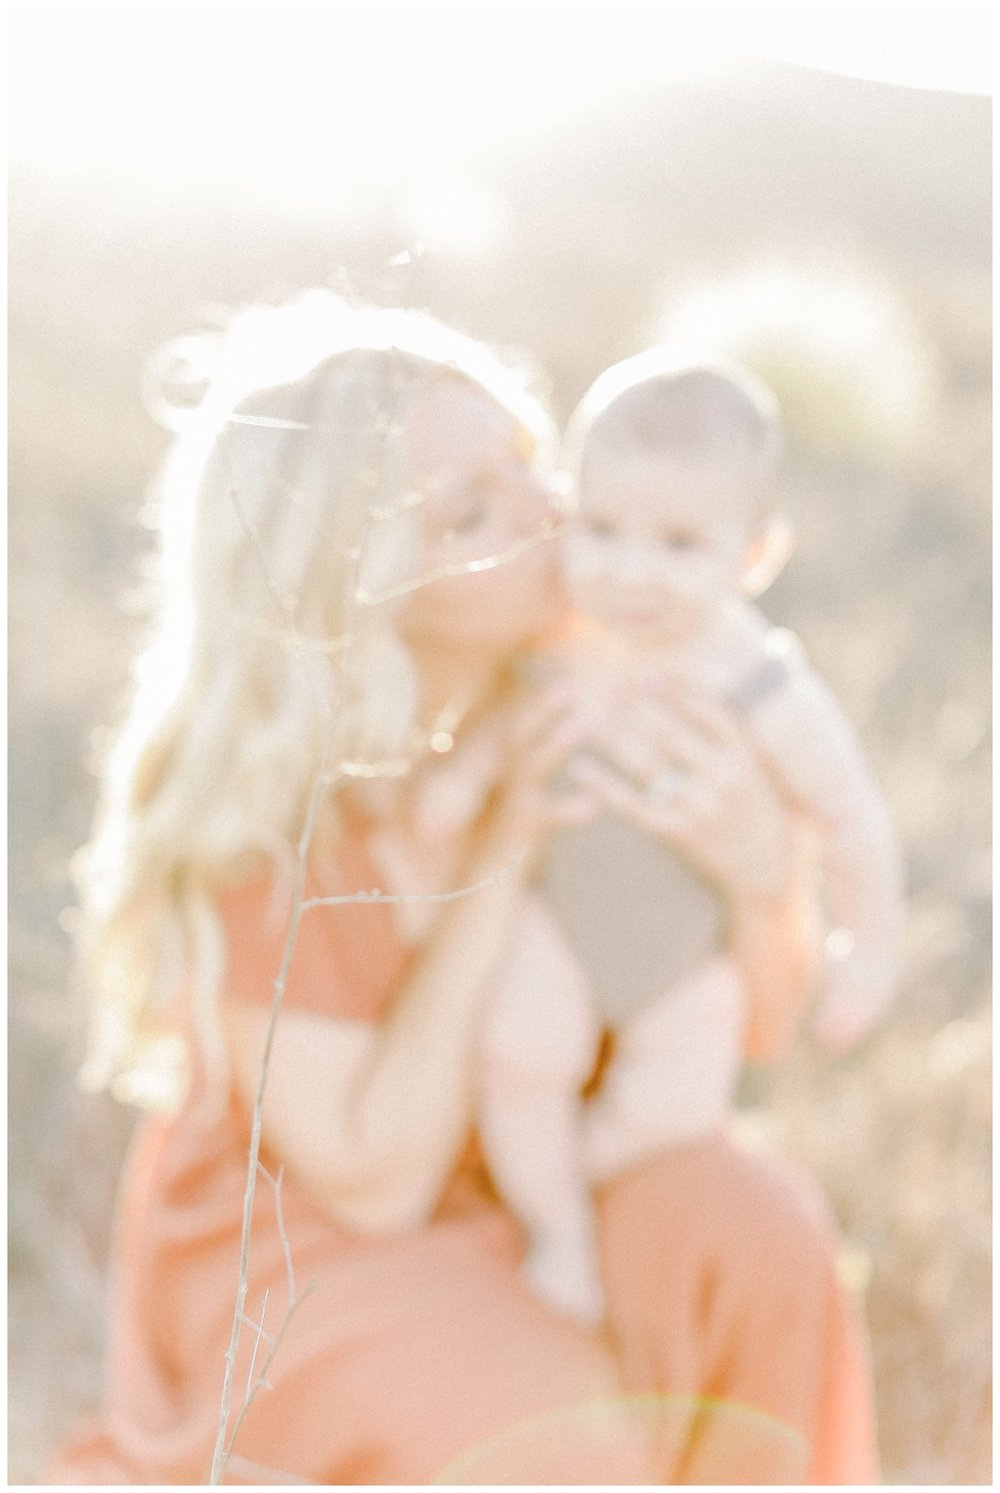 Newport_Beach_Family_Photographer_Newport_Beach_Newborn_Photographer_Orange_County_Family_Photographer_Cori_Kleckner_Photography_Huntington_Beach_San_Clemente_Family_Session_Photography__2402.jpg